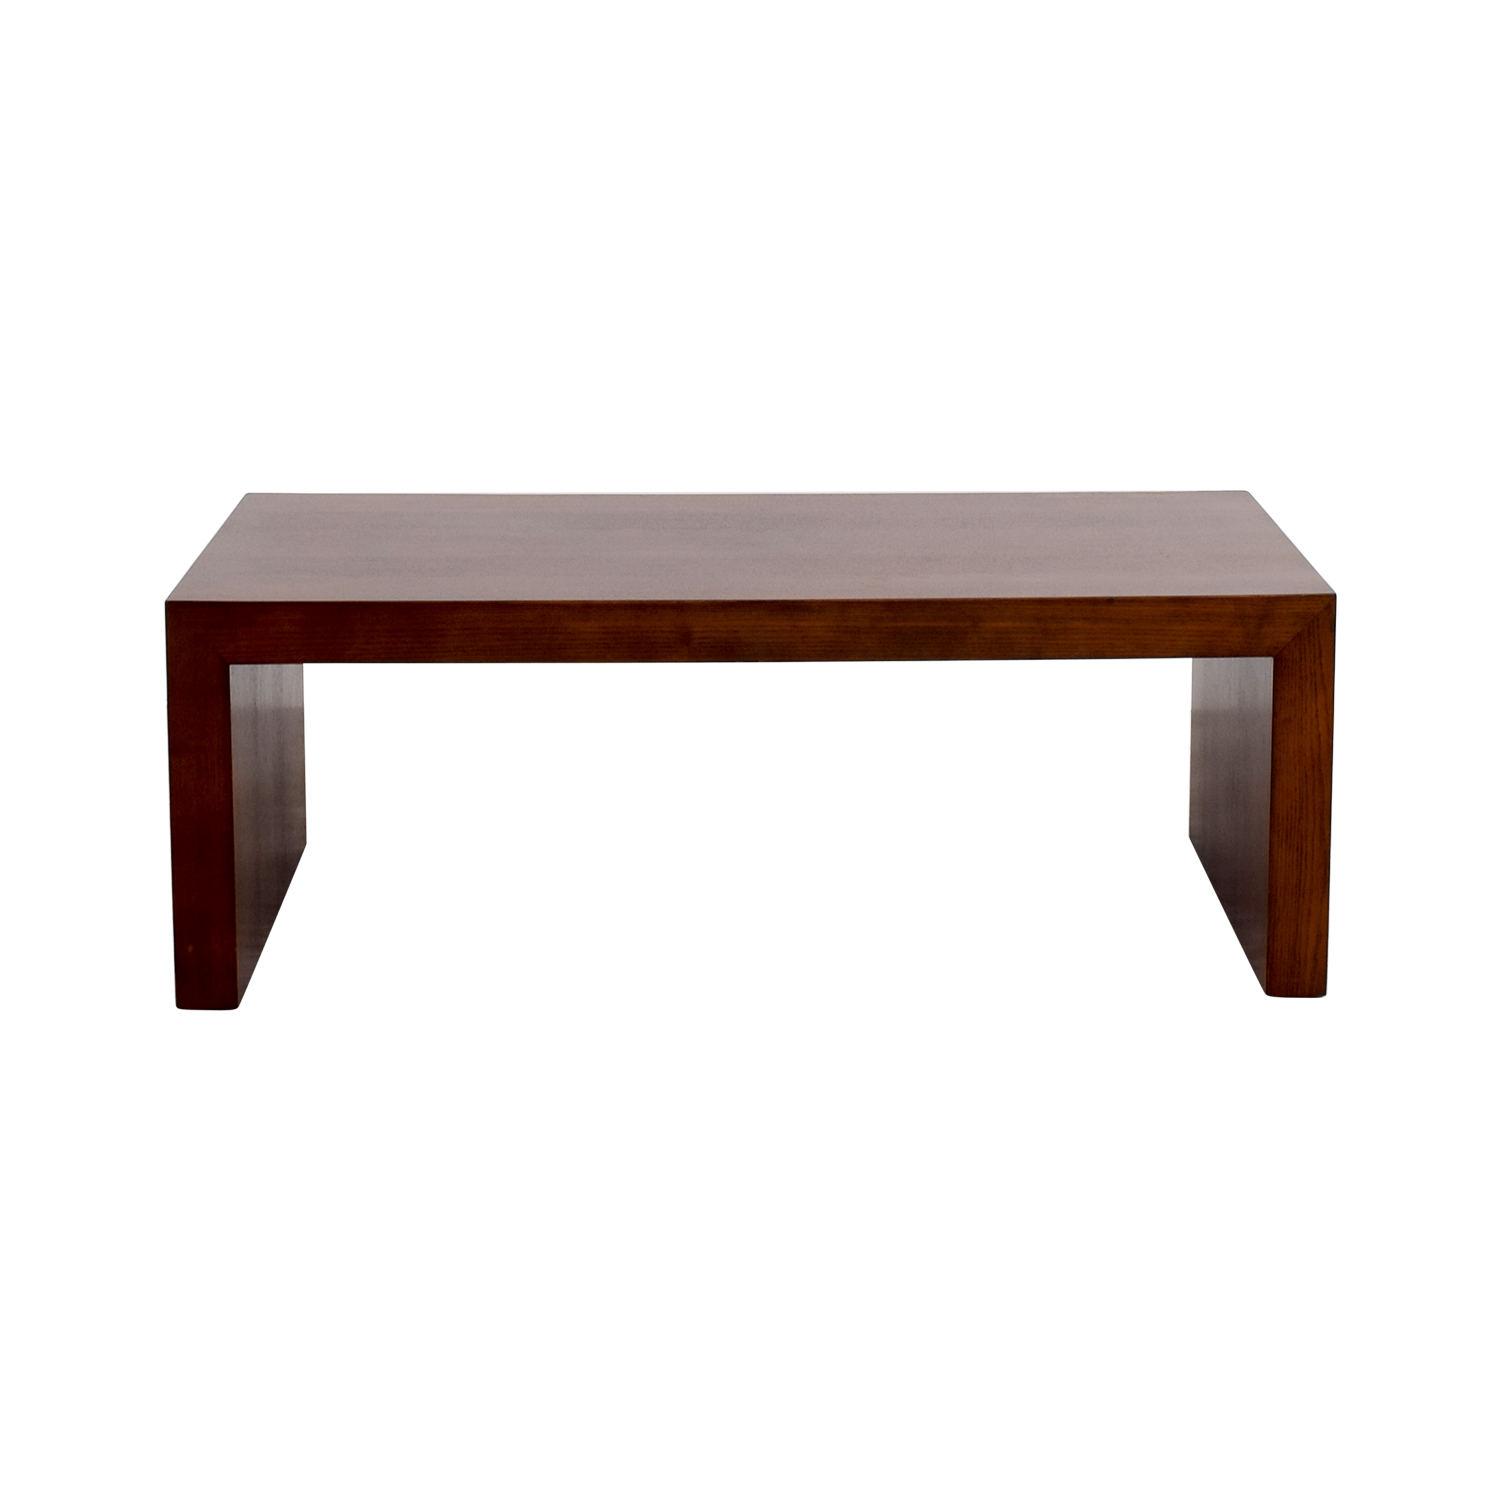 shop Ethan Allen Ethan Allen Wood Coffee Table online